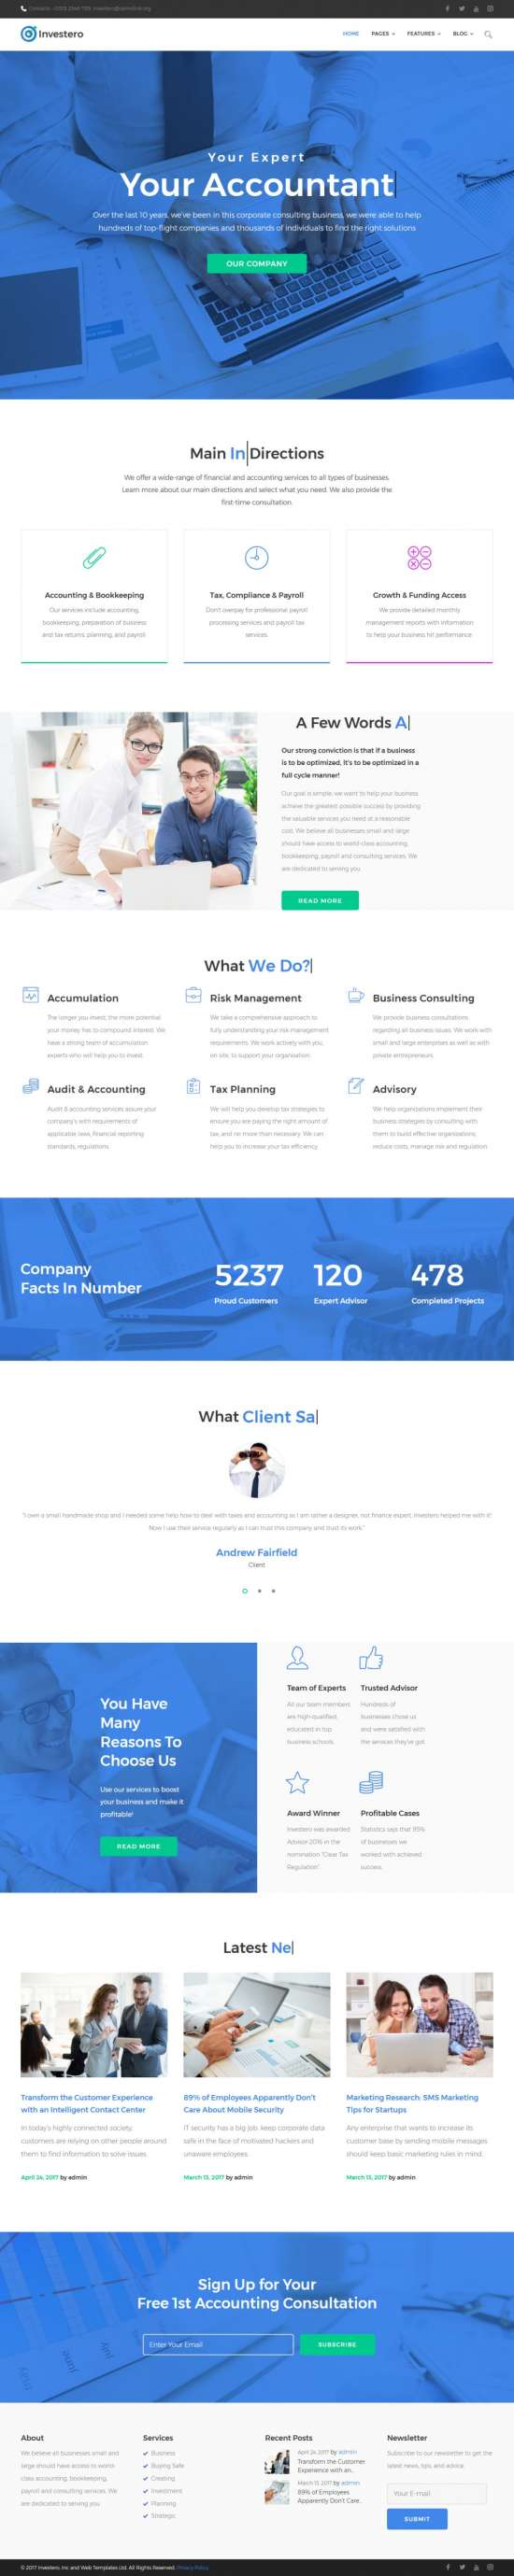 investero wordpress theme 01 550x2758 - Investero WordPress Theme